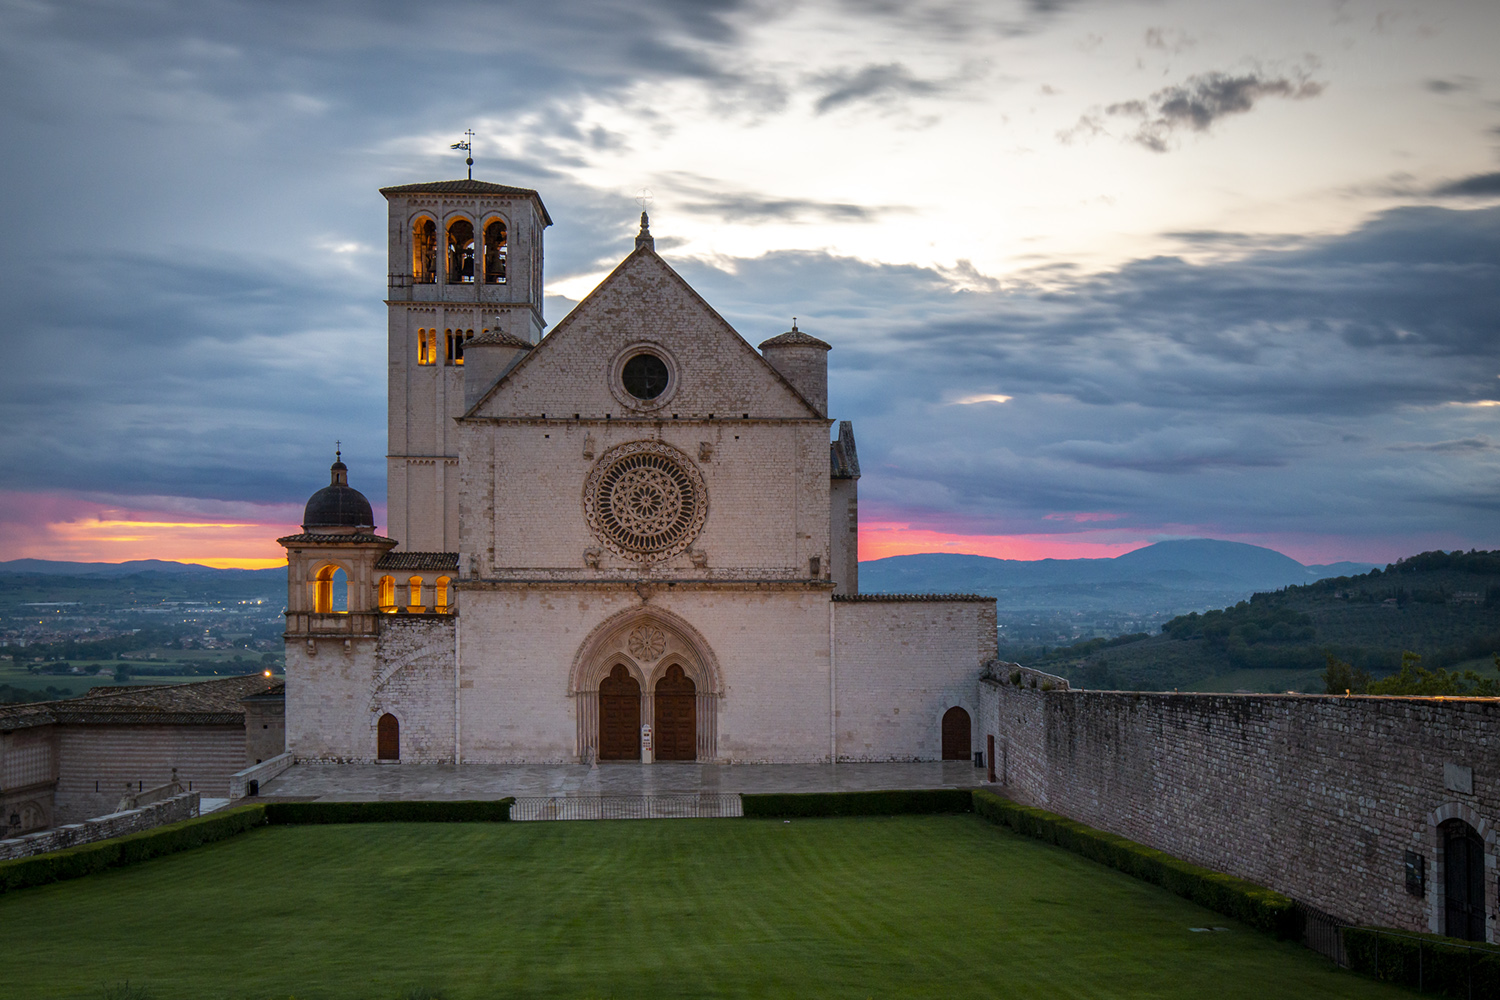 basilica-di-san-francesco-assisi-000